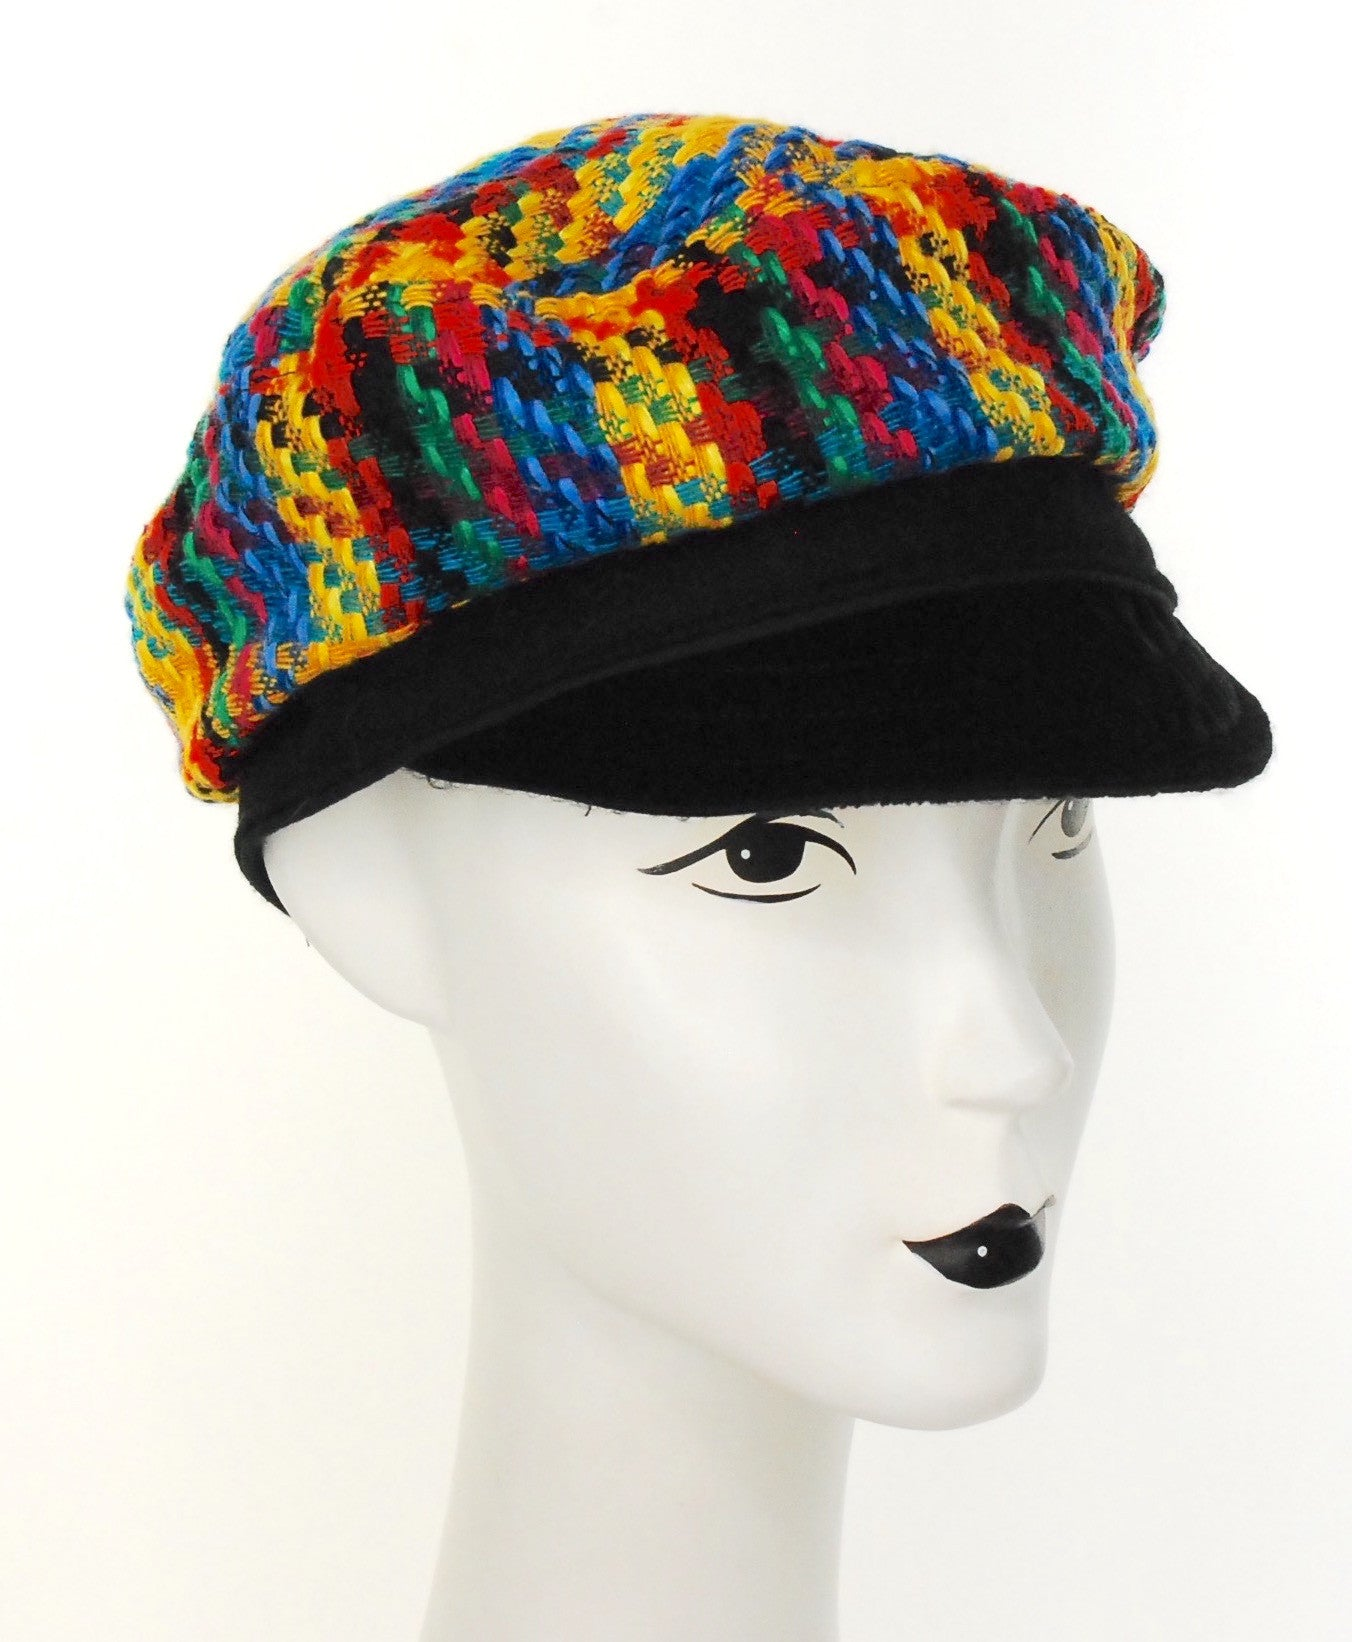 Colorful Tweed cap with black peak - mariacurcic - 1